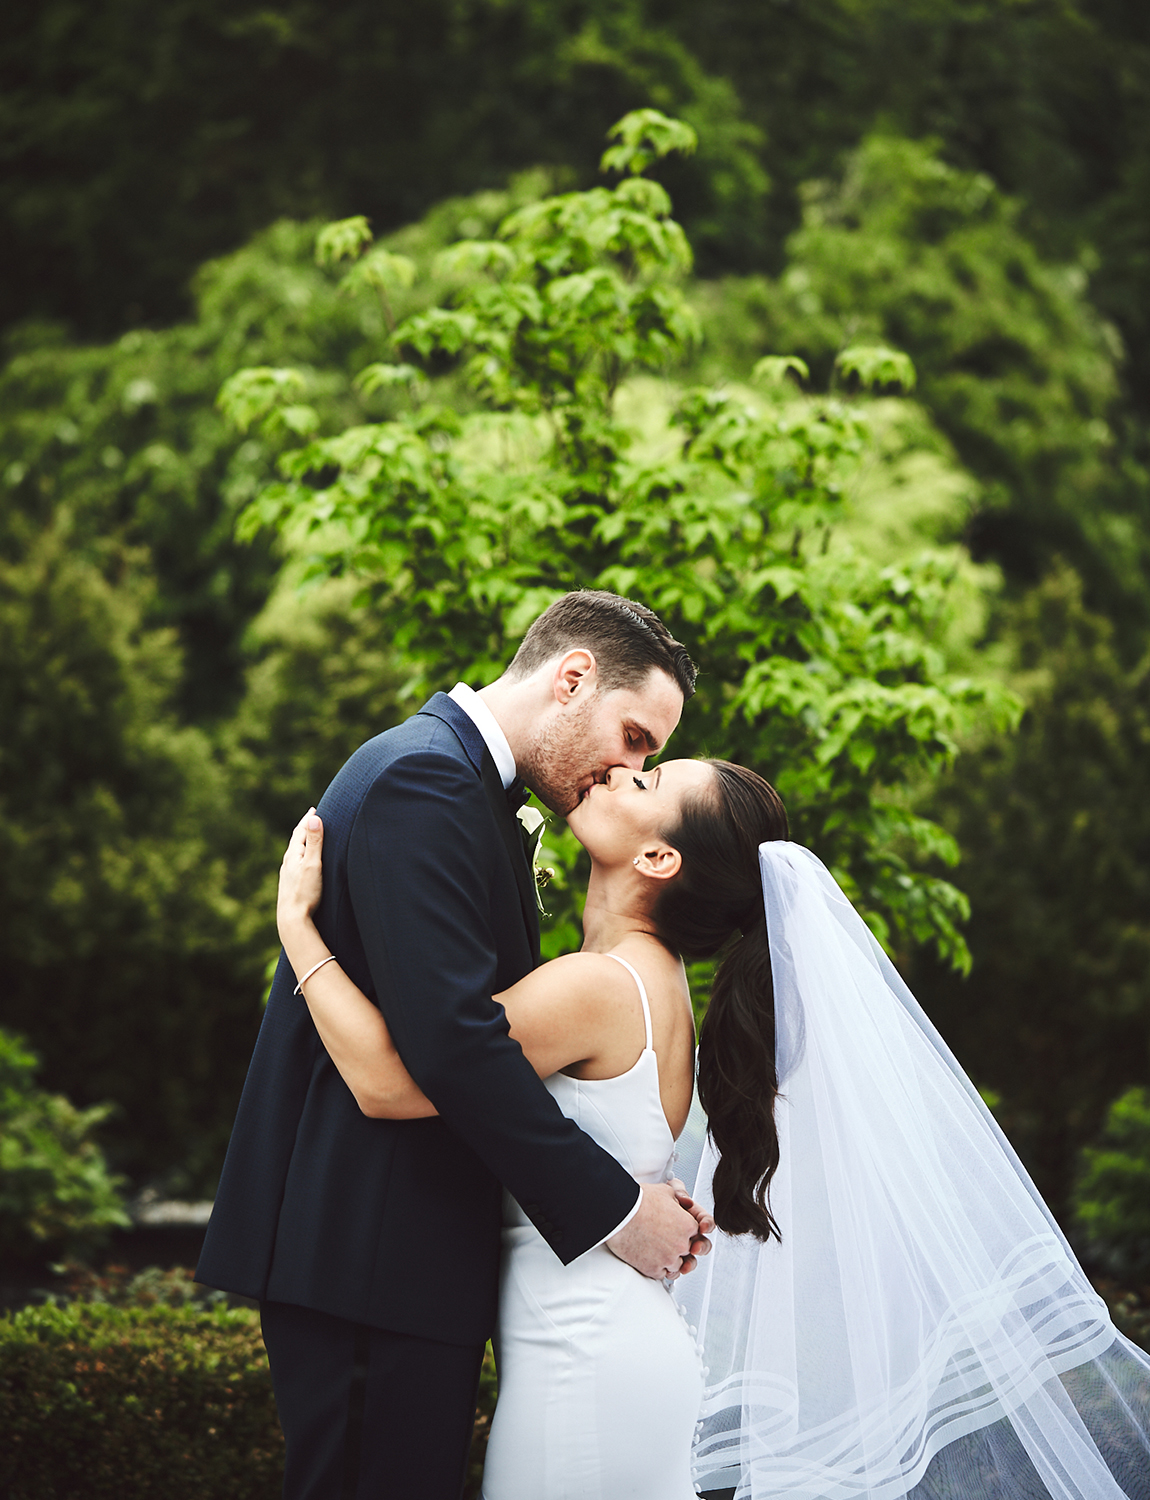 180519_PalaceatSomersetParkWeddingPhotography_NJWeddingPhotographer_By_BriJohnsonWeddings_0056.jpg